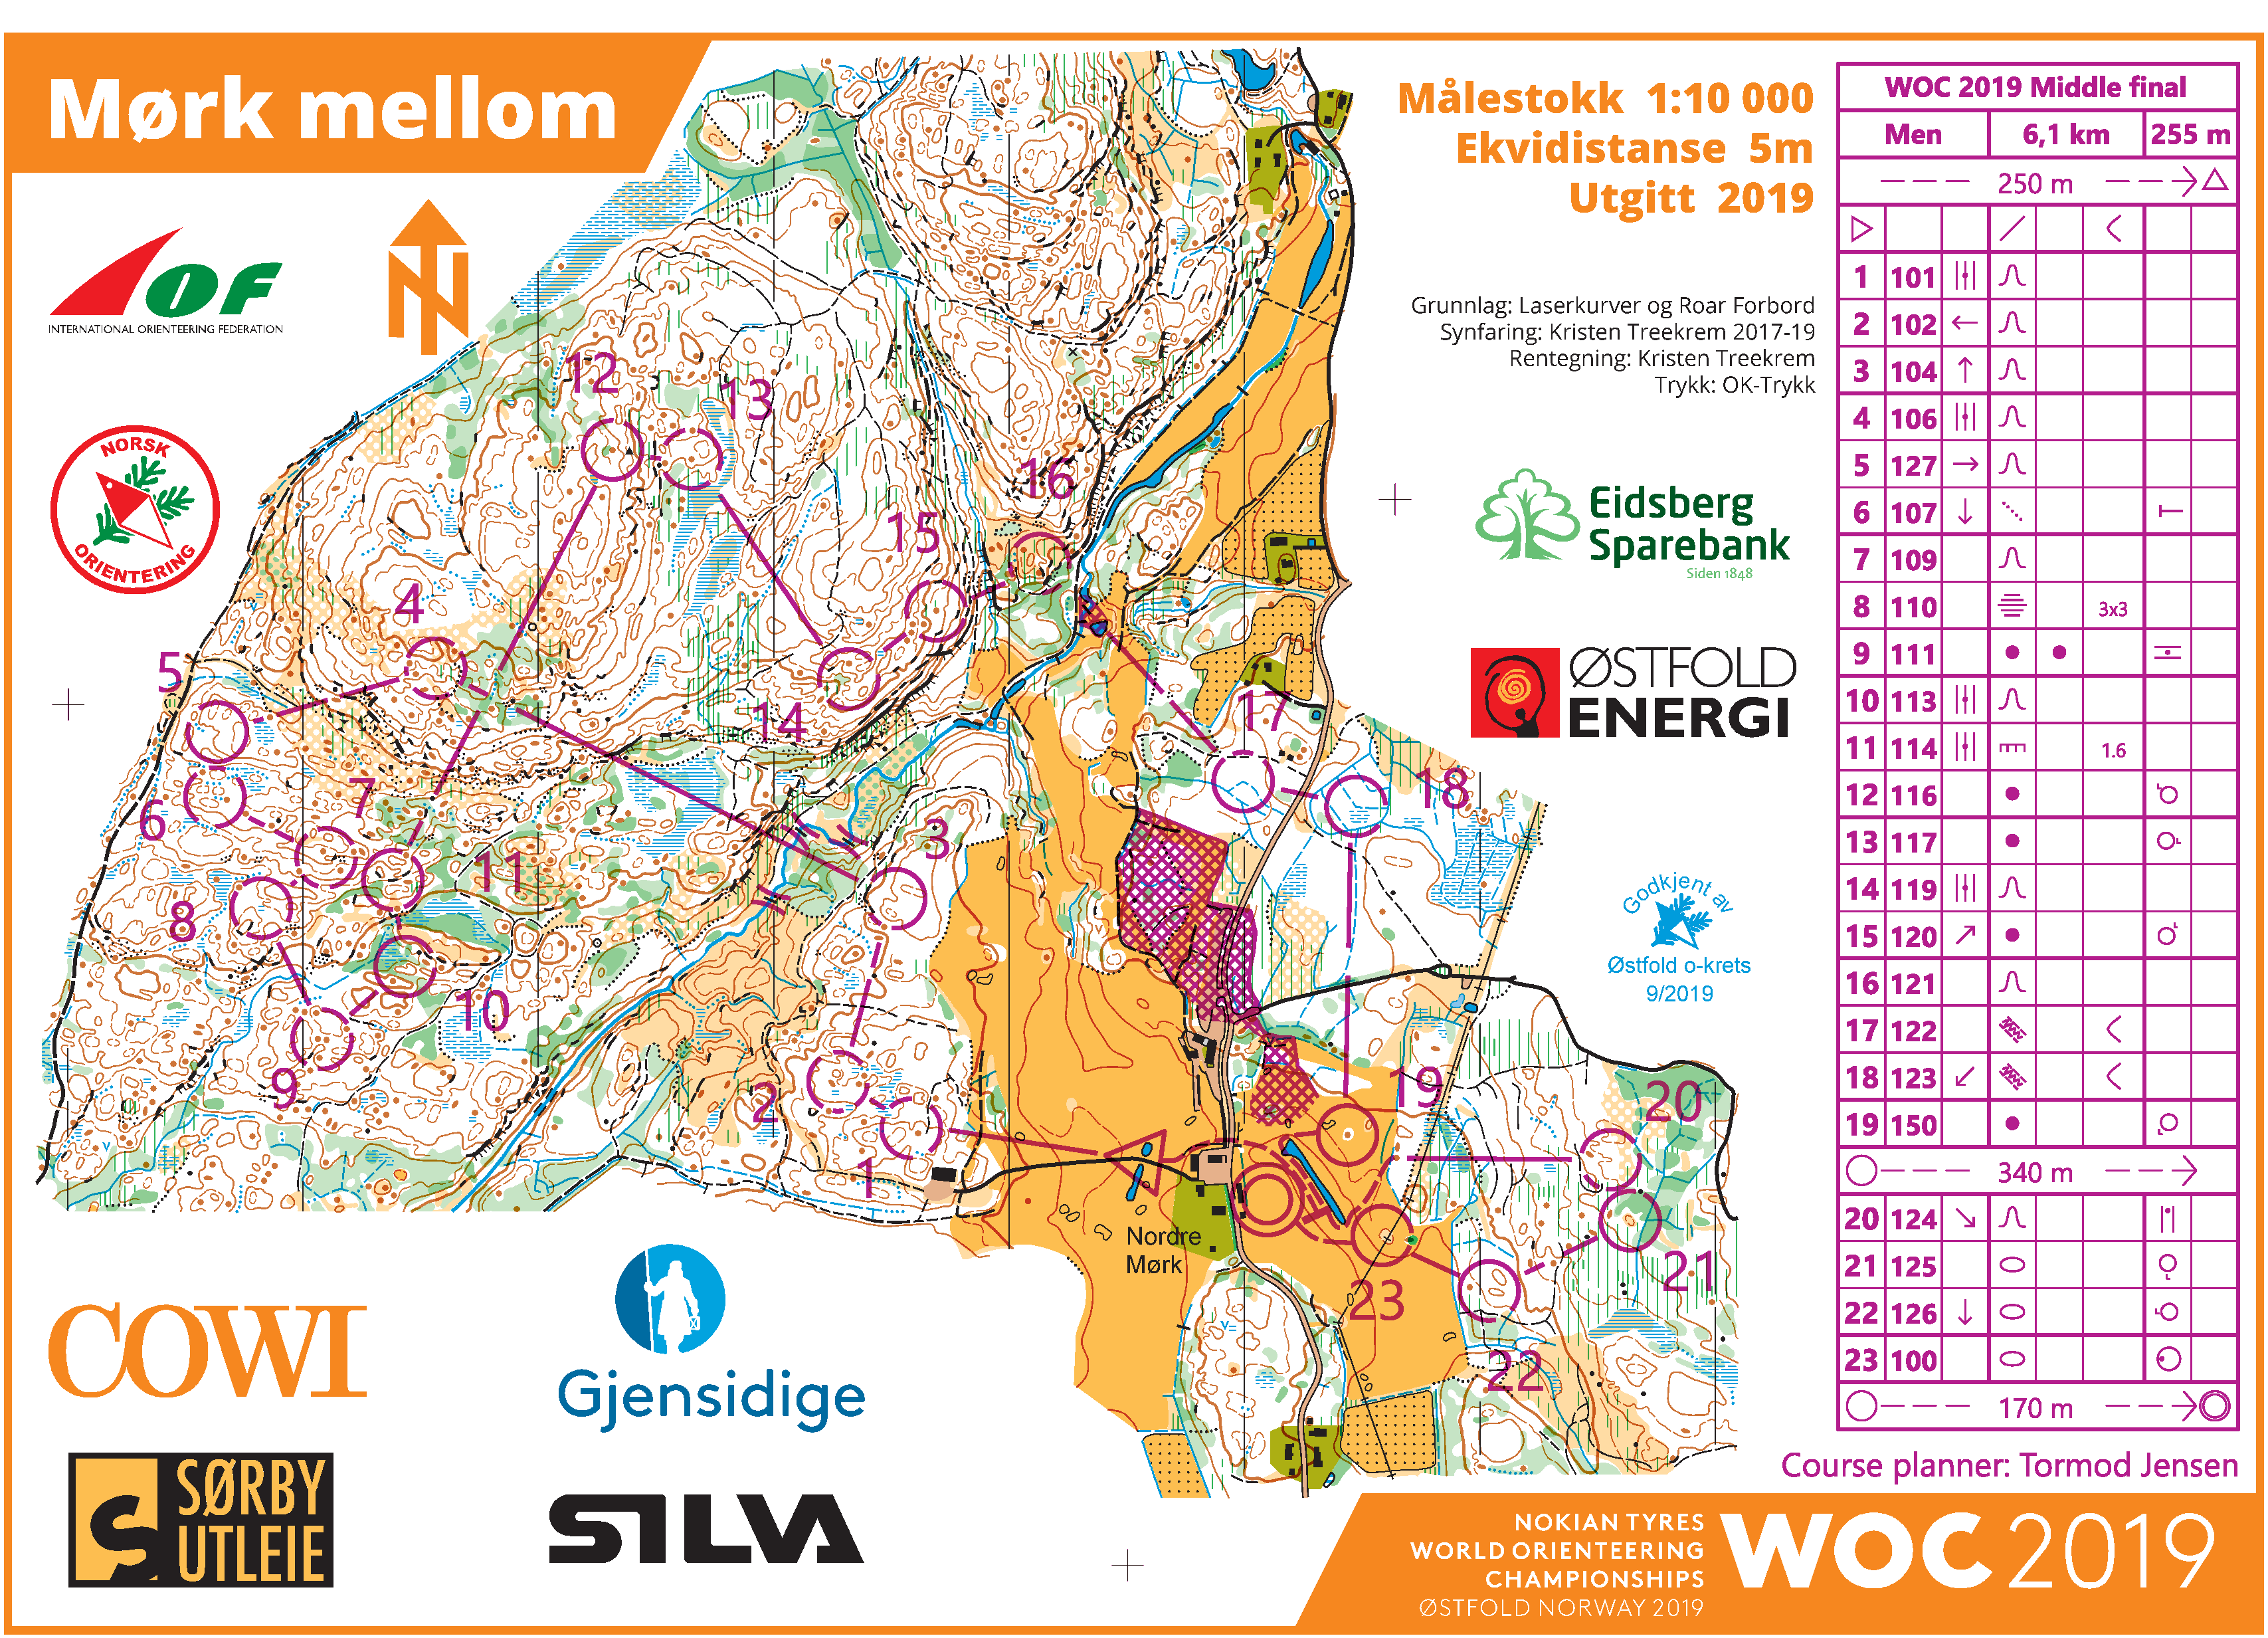 Maps 0.Woc Middle 2019 Maps And Results World Of O News